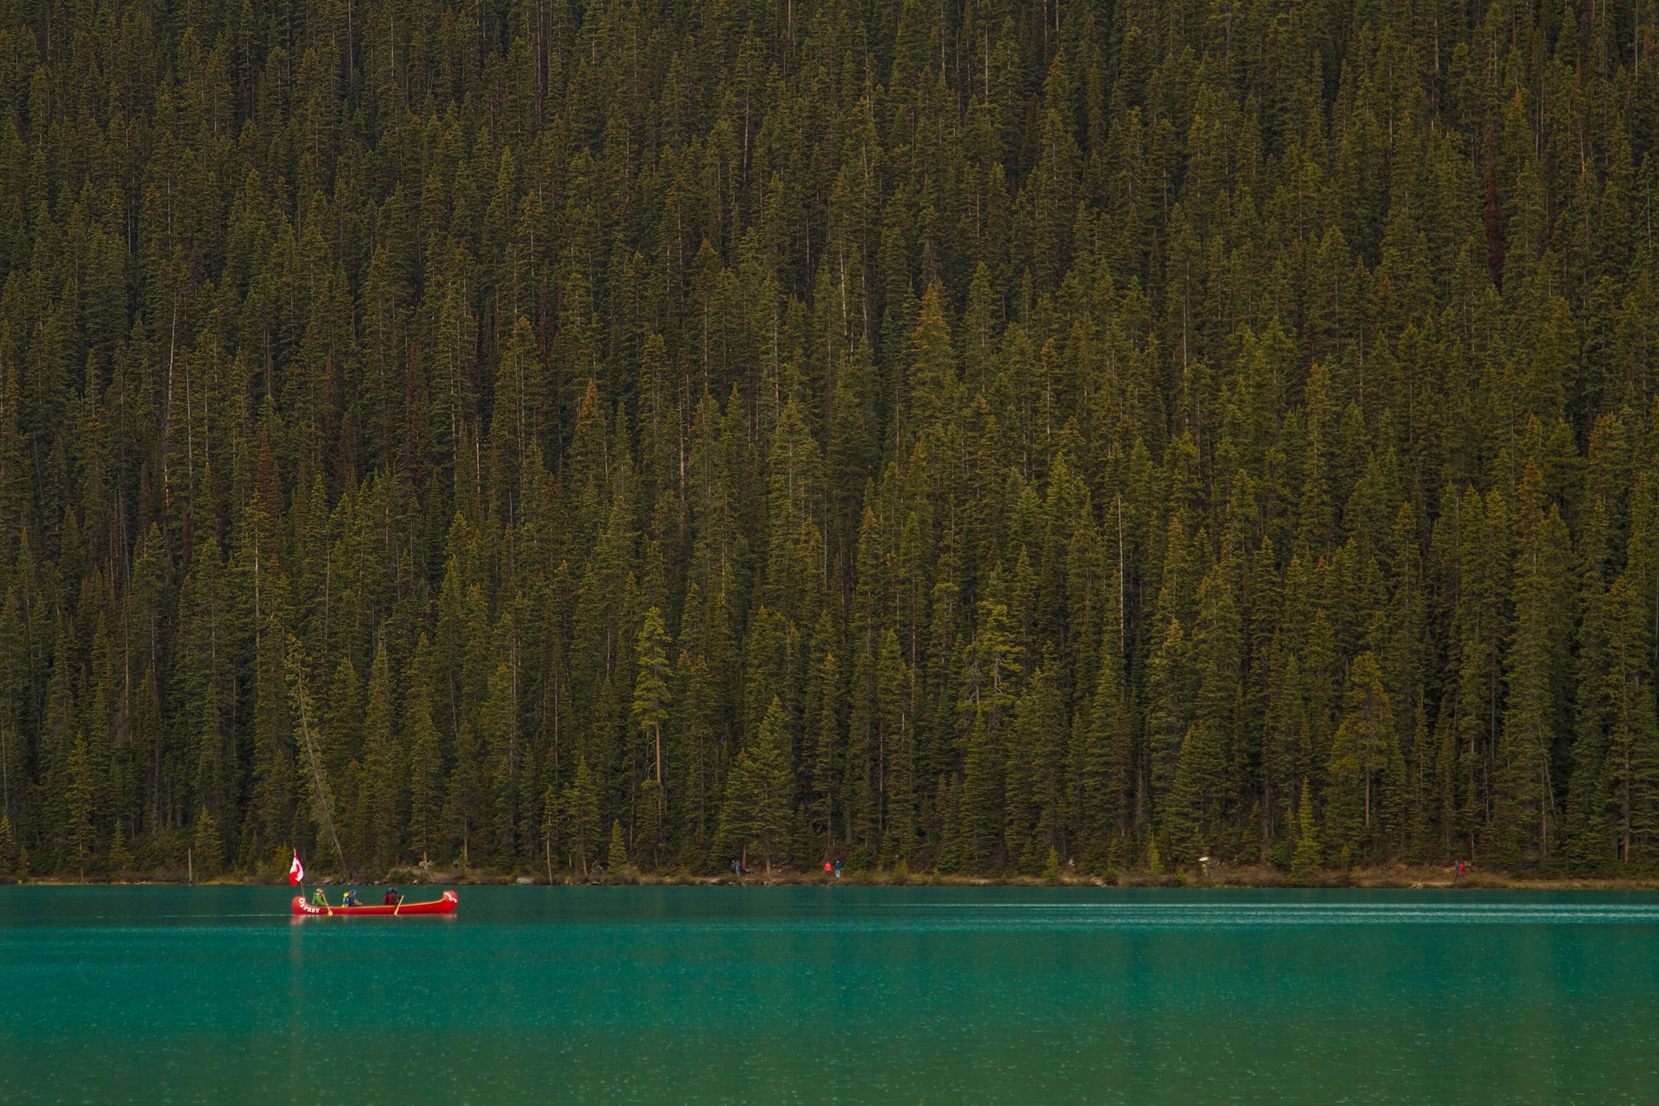 Canoeing on Lake Louise is a unique way to enjoy both the lake and the rugged peaks of Banff National Park.